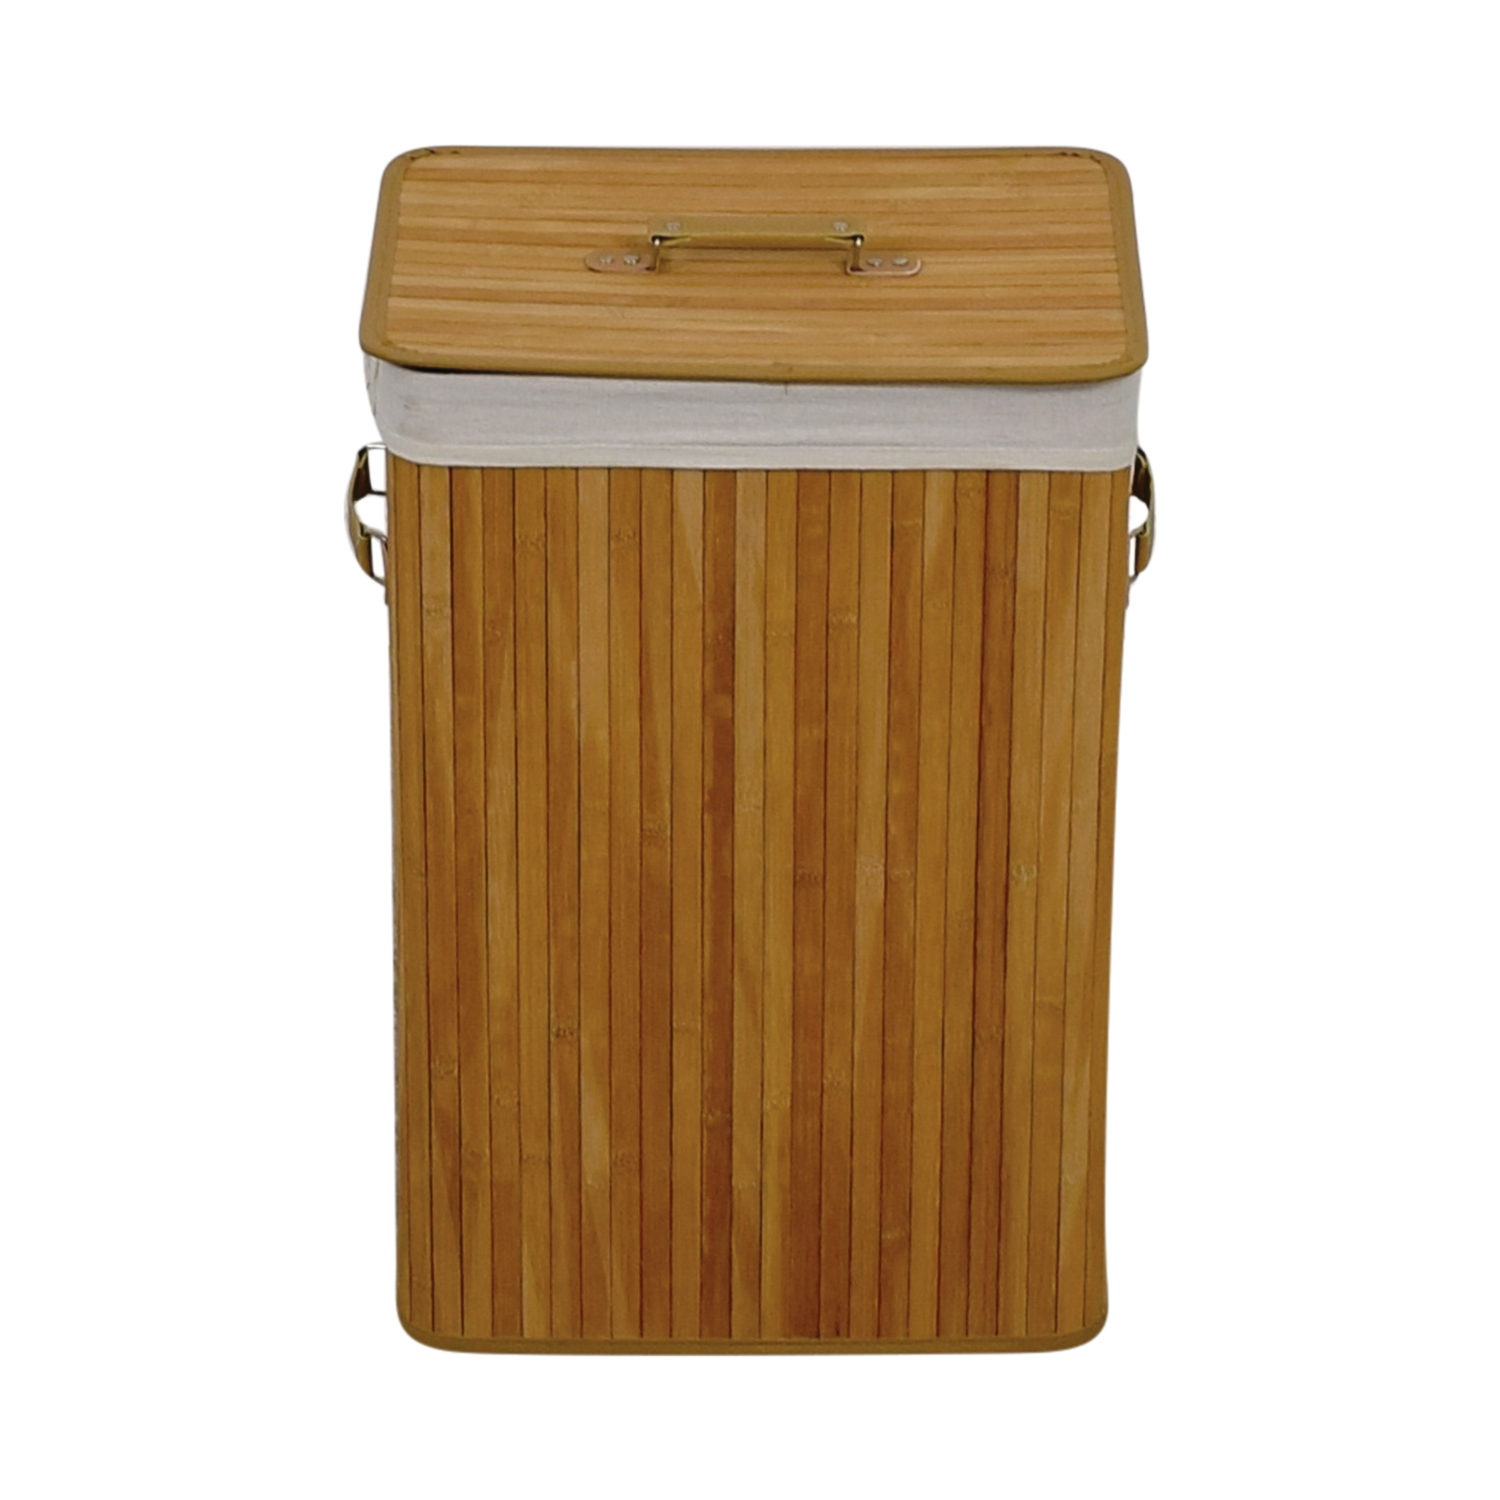 Giantex Giantex Natural Bamboo Laundry Hamper Beech